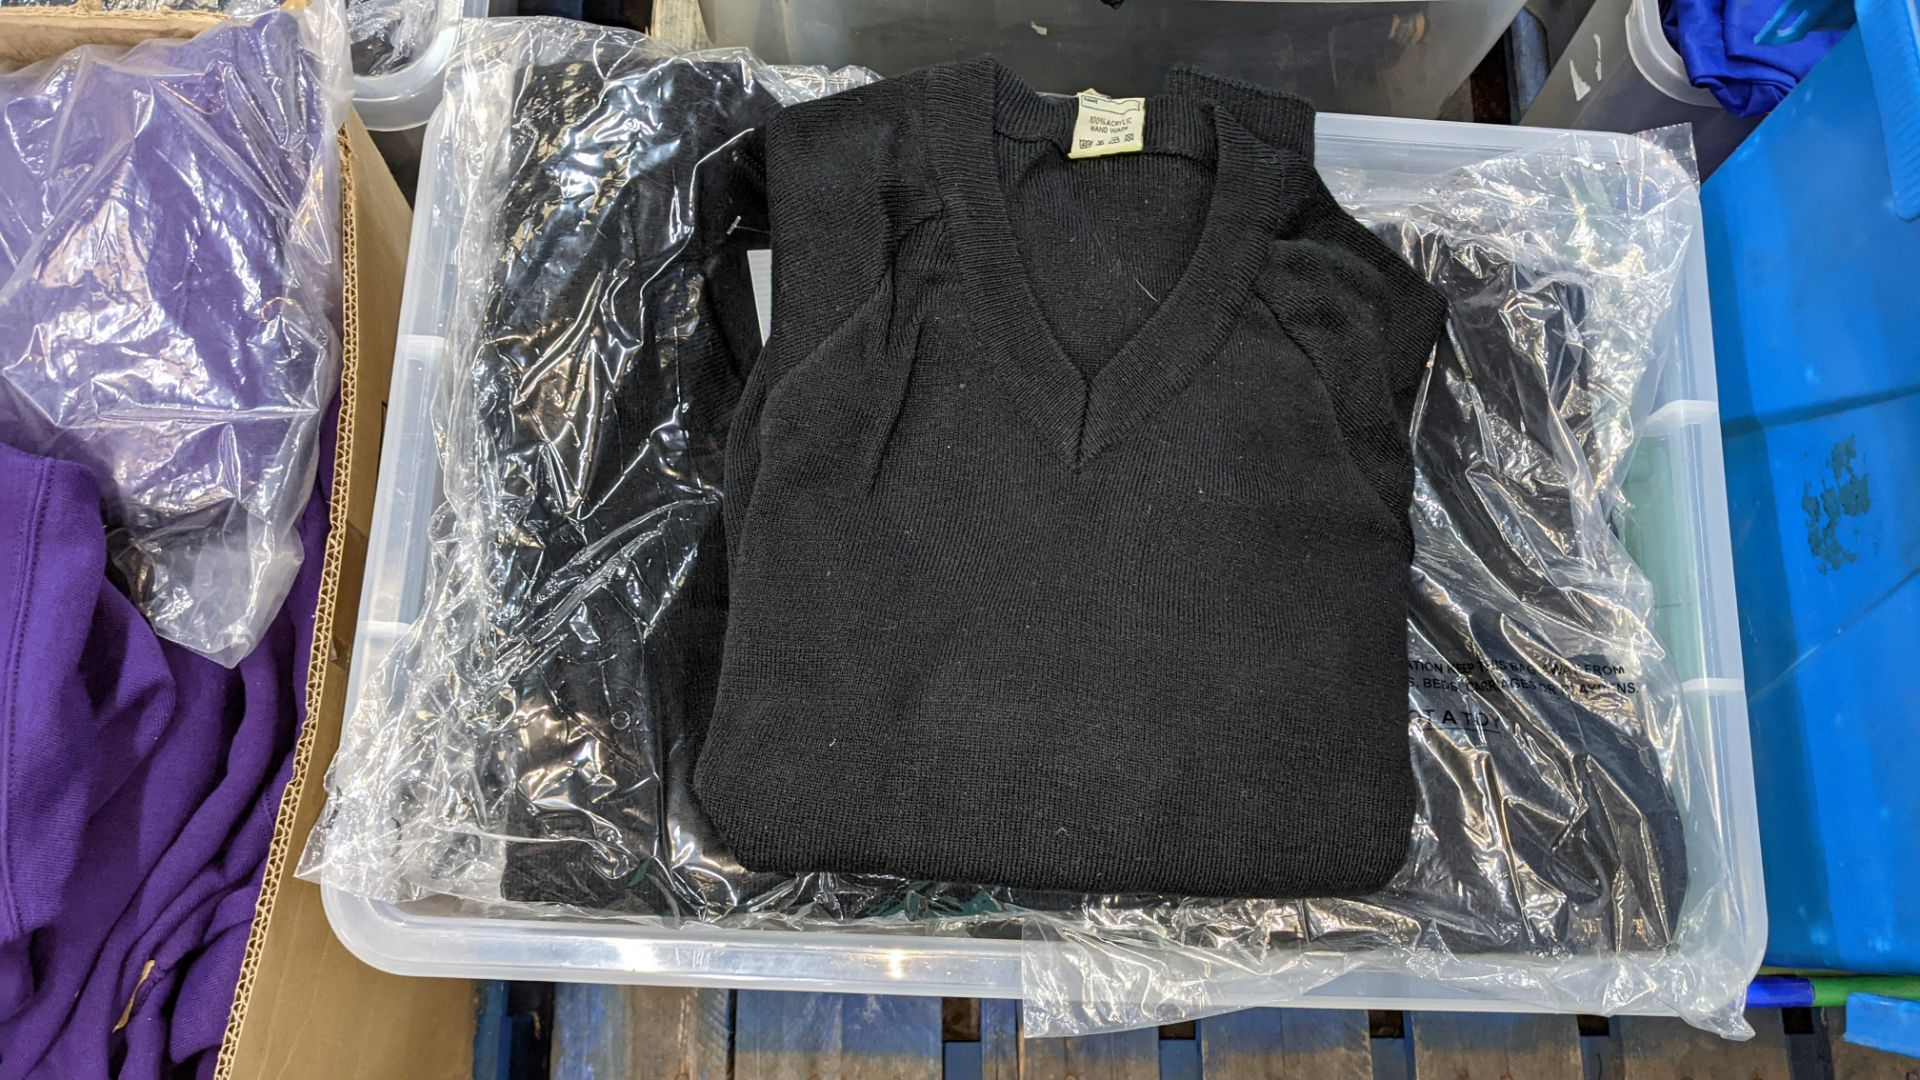 Approx 15 off children's black V neck jumpers - the contents of 1 large crate. NB crate excluded - Image 3 of 4